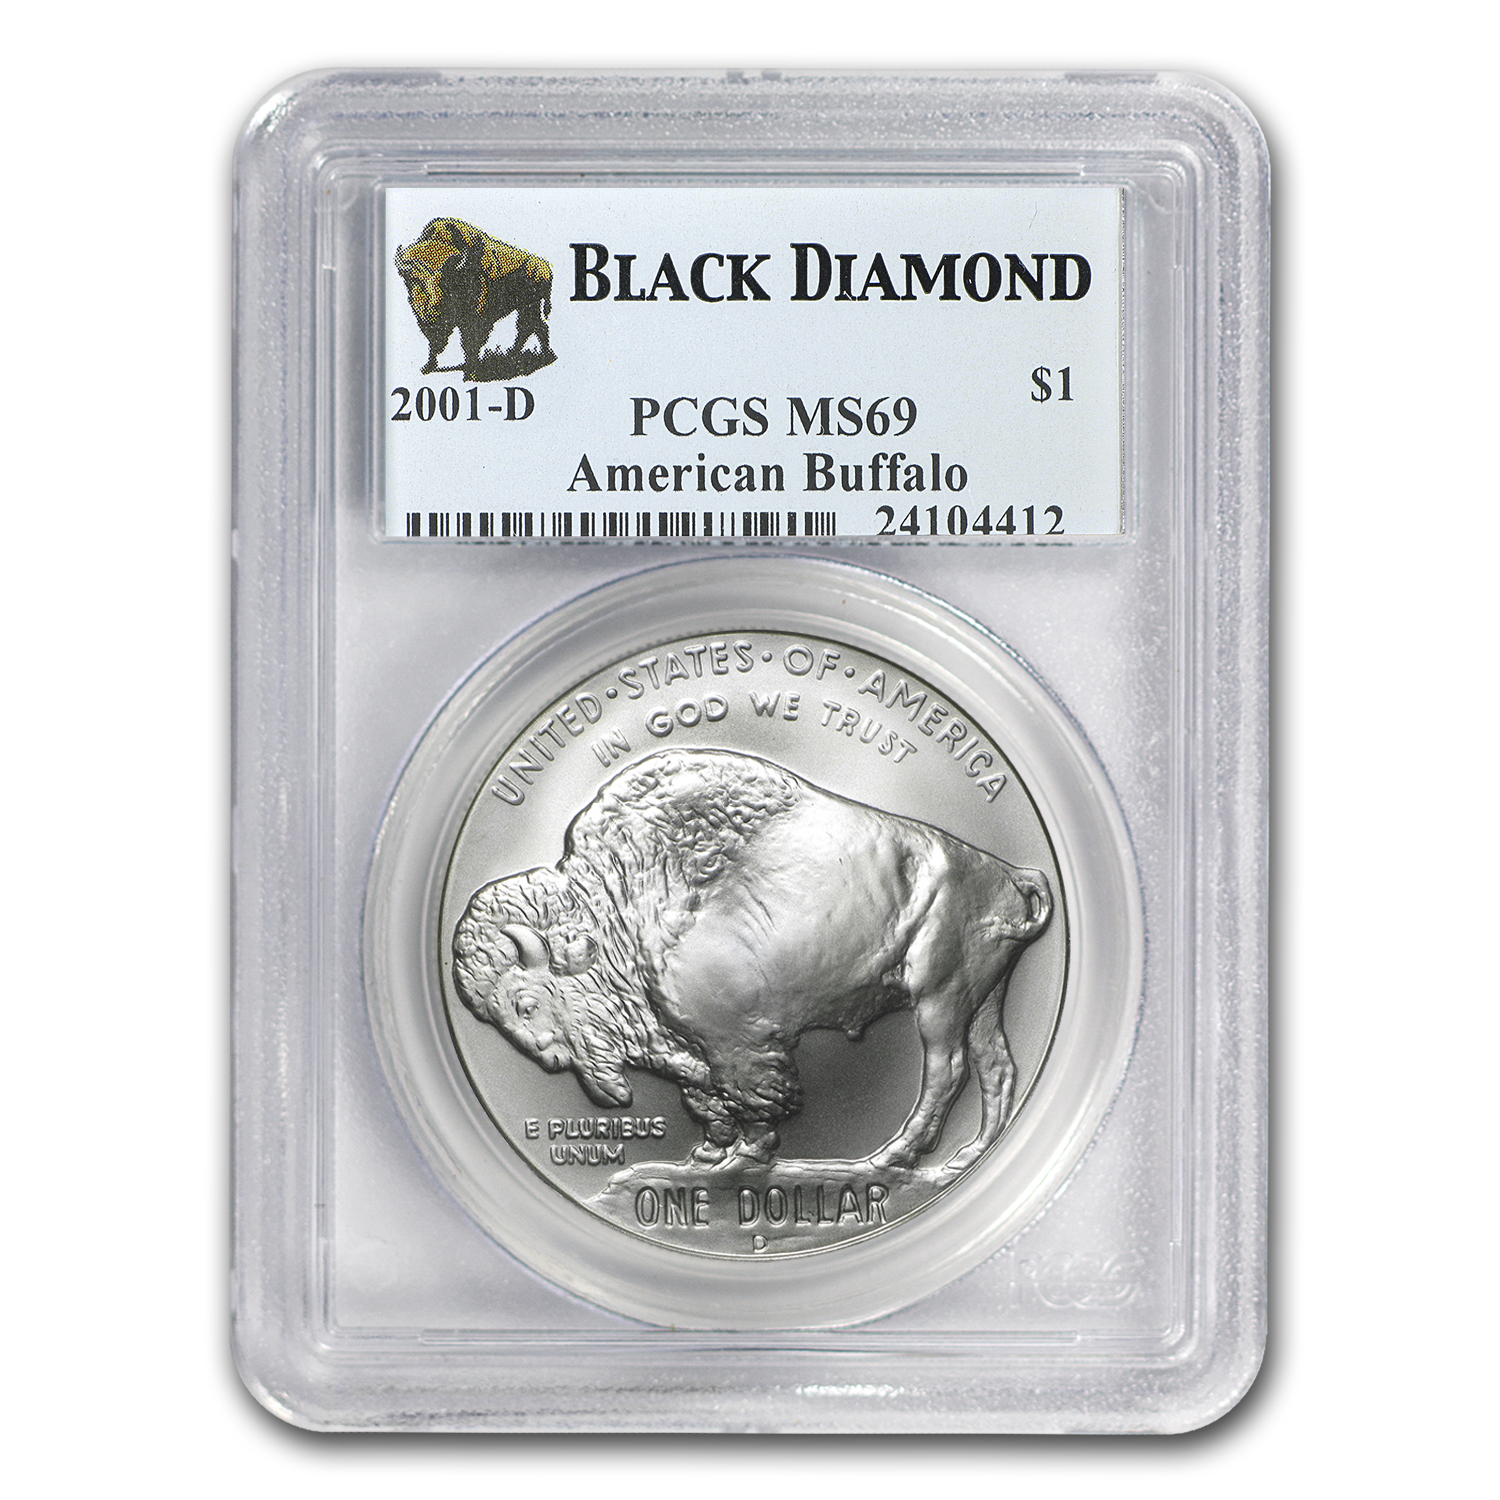 2001-D Buffalo Black Diamond $1 Silver Commemorative MS-69 PCGS